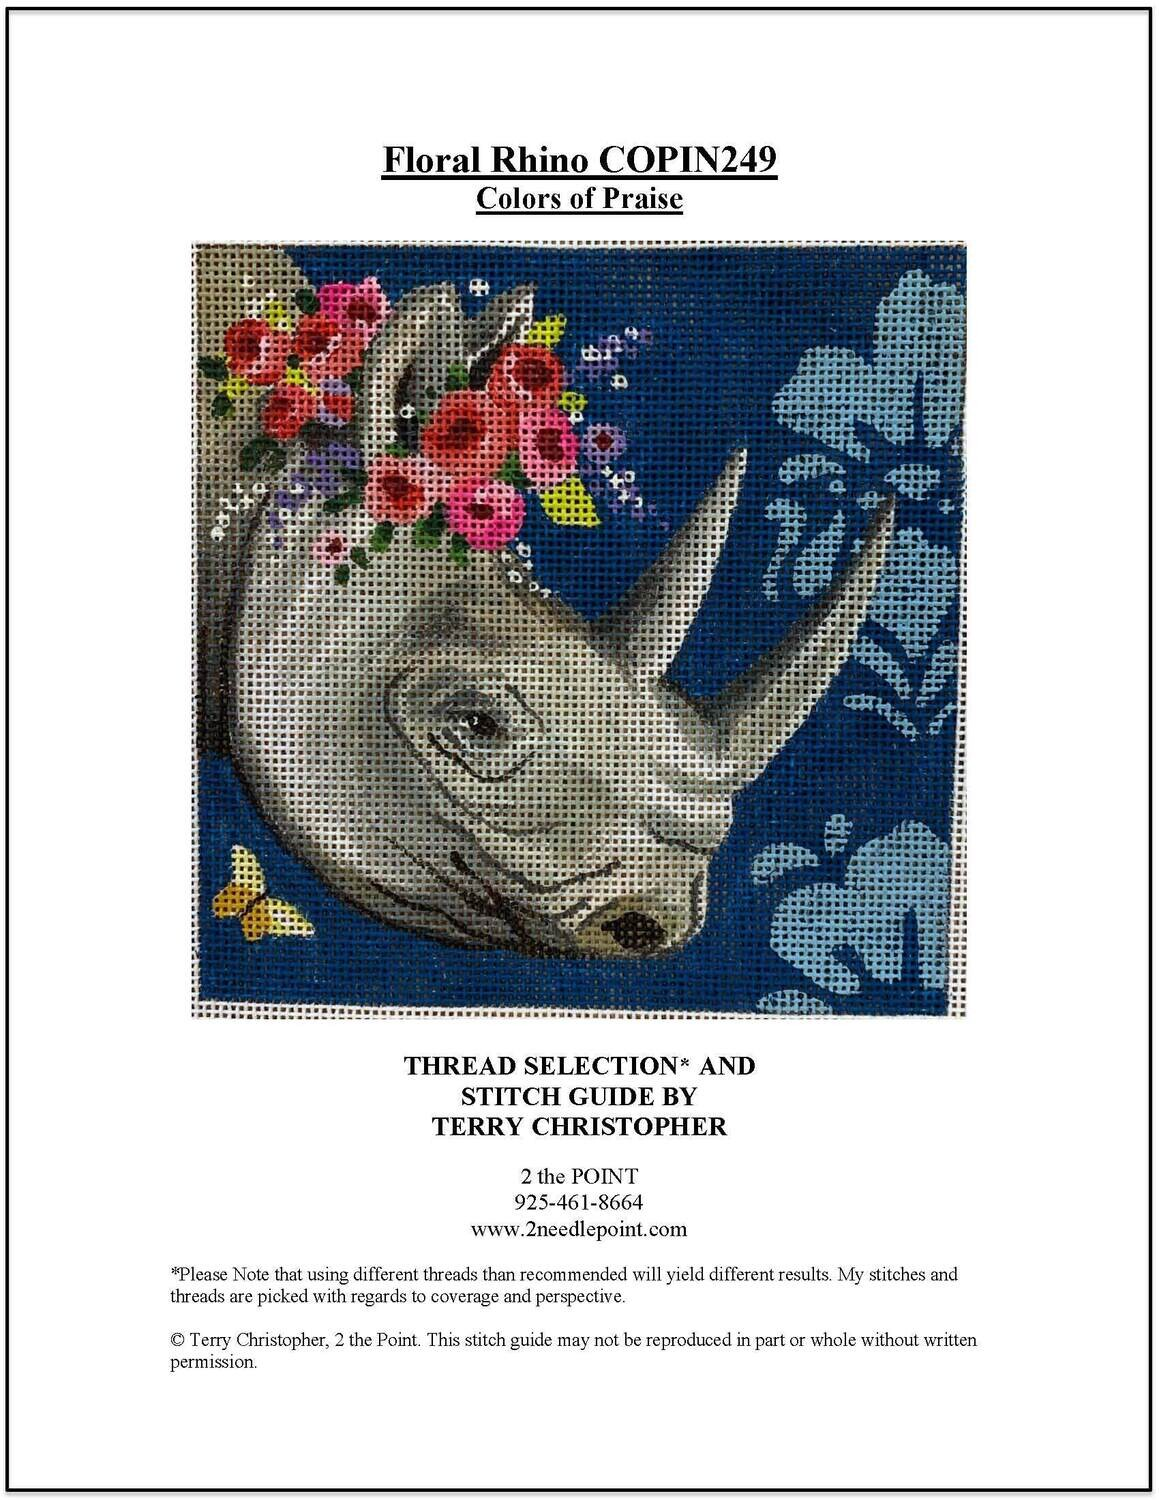 Colors of Praise, Floral Rhino COPIN249